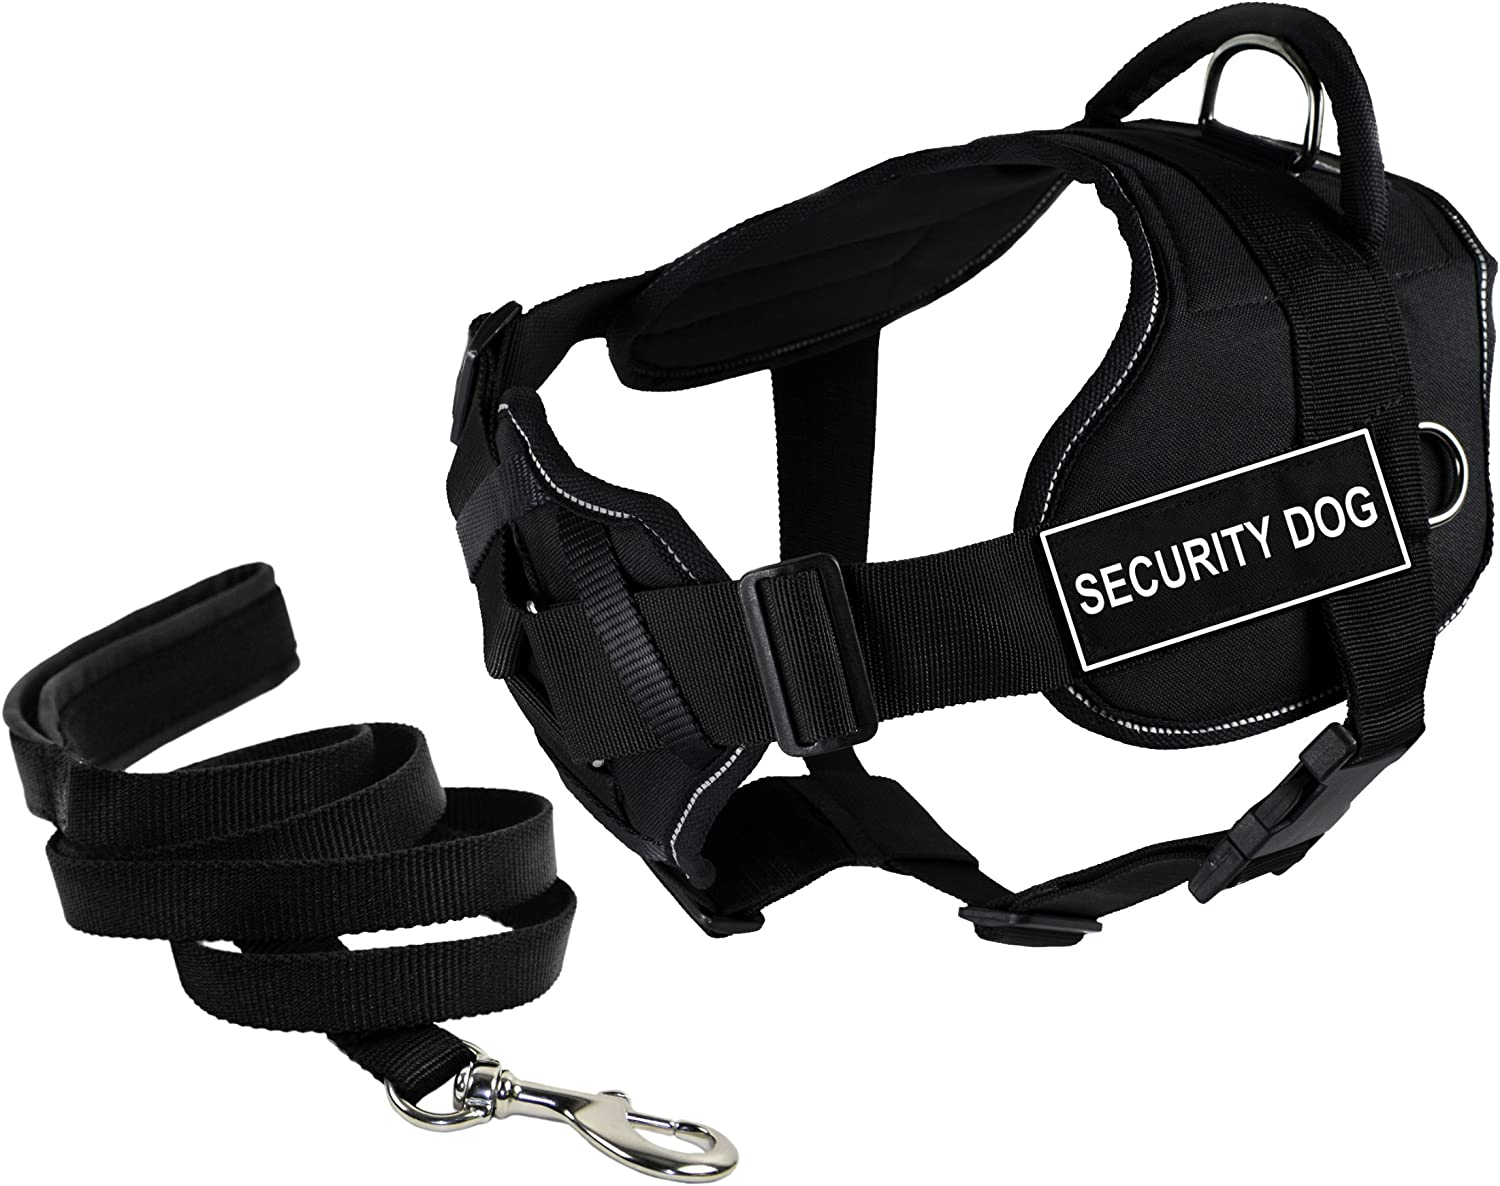 Dean & Tyler's DT Fun Chest Support SECURITY DOG Harness with Reflective Trim, Large, and 6 ft Padded Puppy Leash.